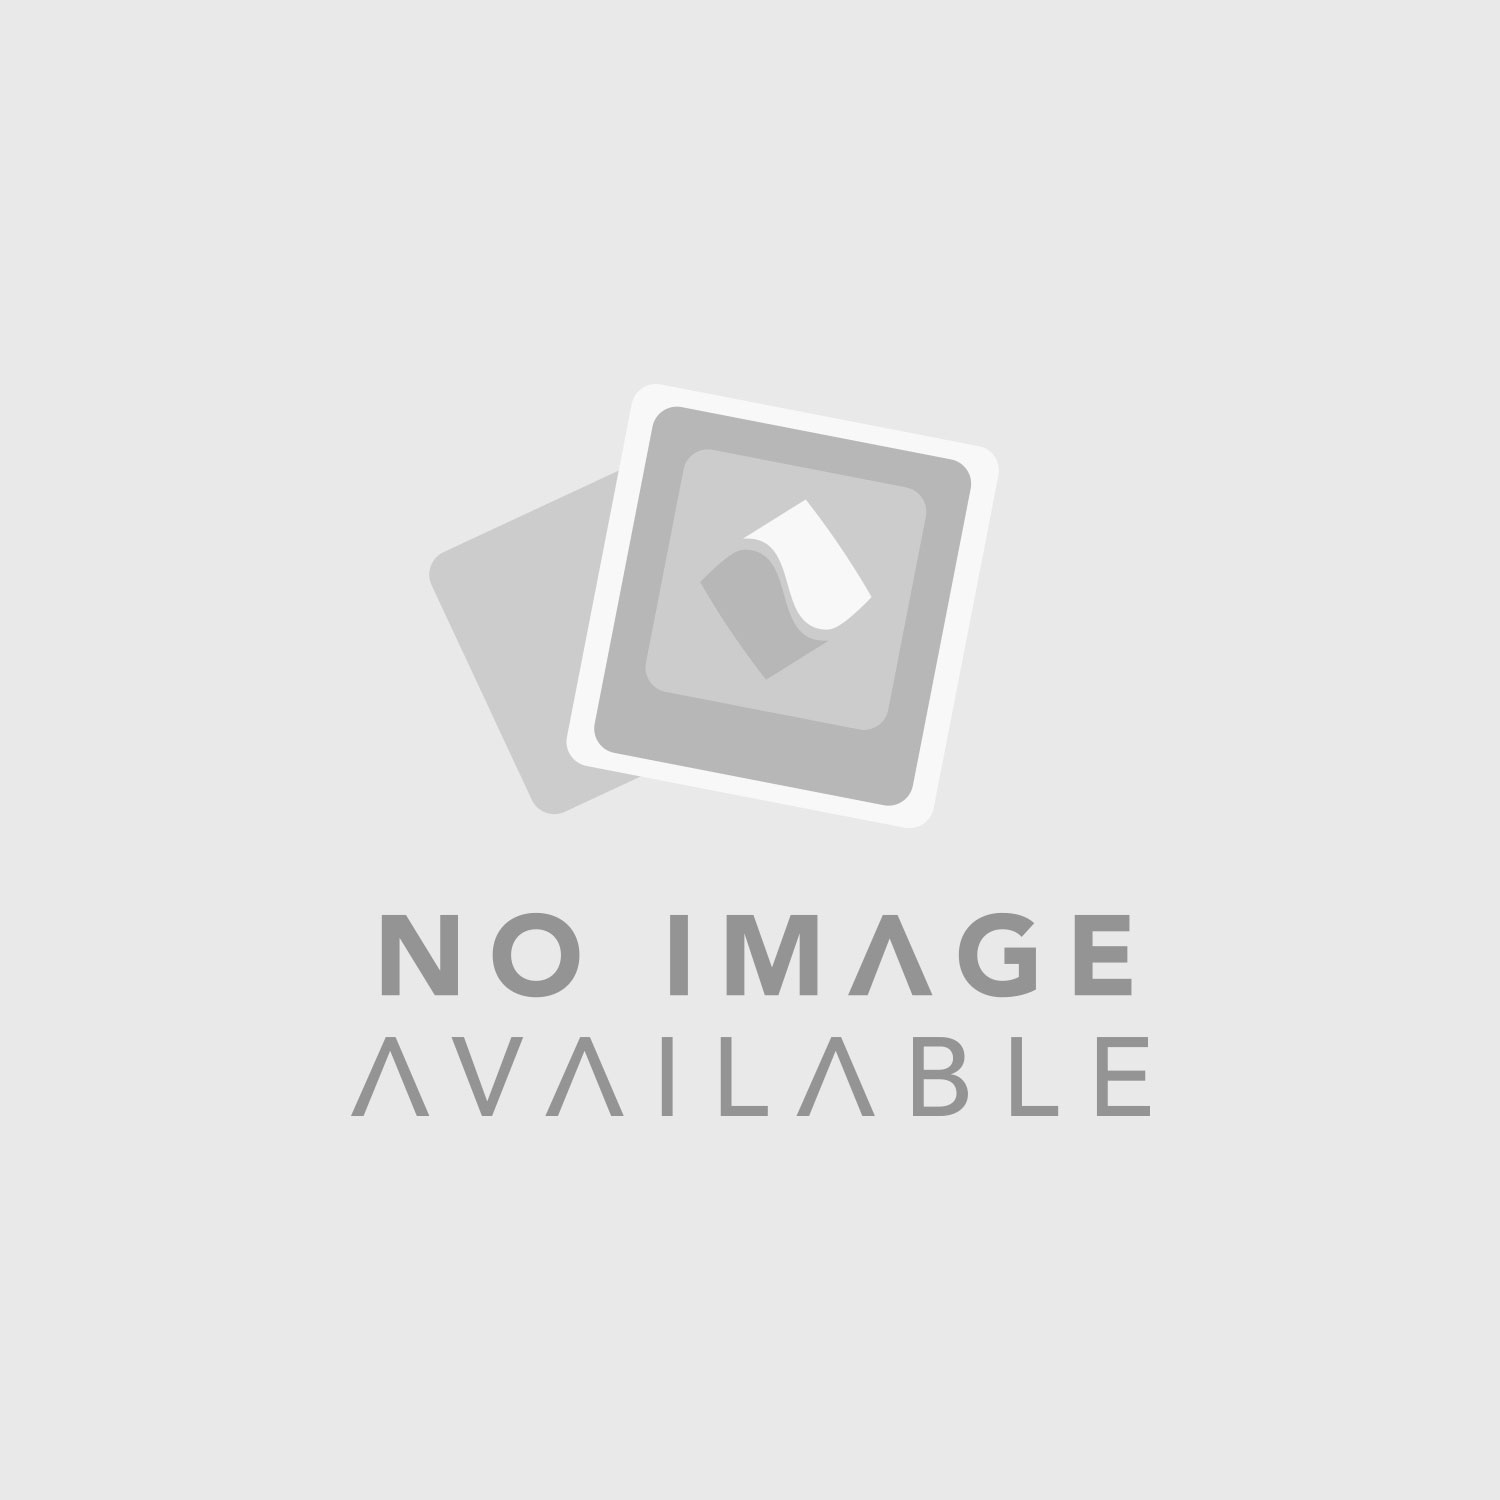 Neutrik 203F Single Gang Wallplate with Dual Female XLR